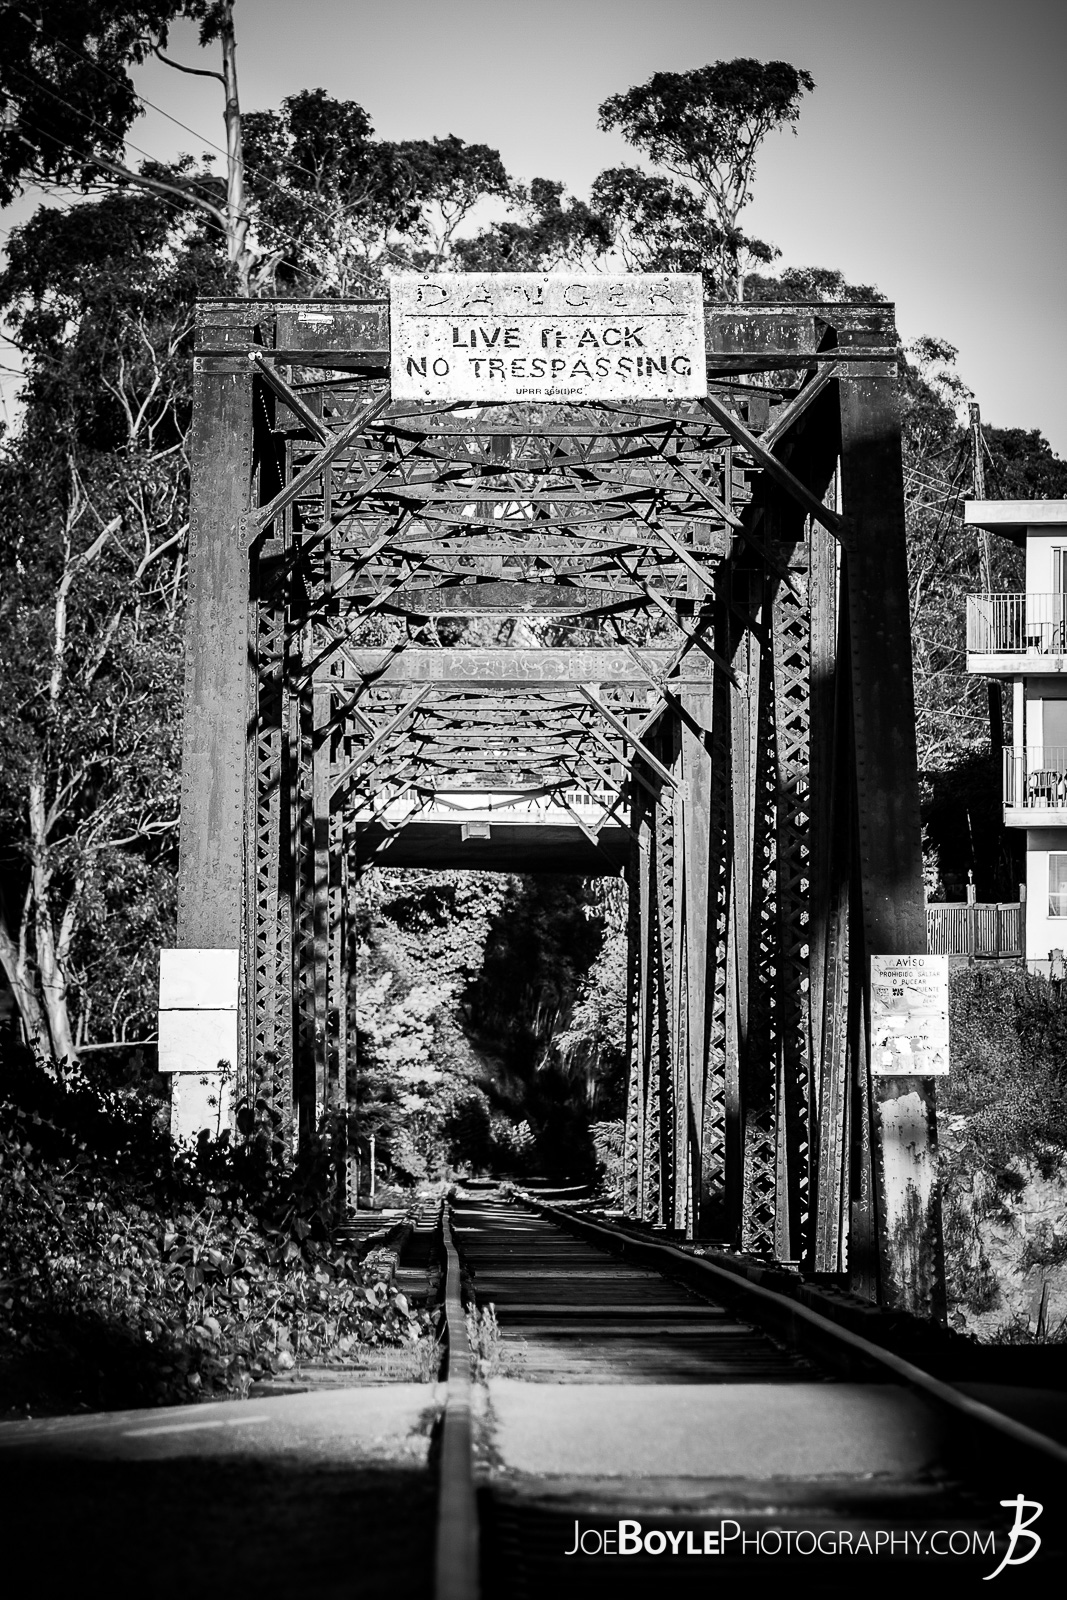 "While I was visiting a friend in Monterey, California we stopped over at the Santa Cruz Beach and Boardwalk. This cool looking bridge was nearby! Don't worry, I didn't venture too far with the ""Live Track - No Trespassing"" sign. ;)"